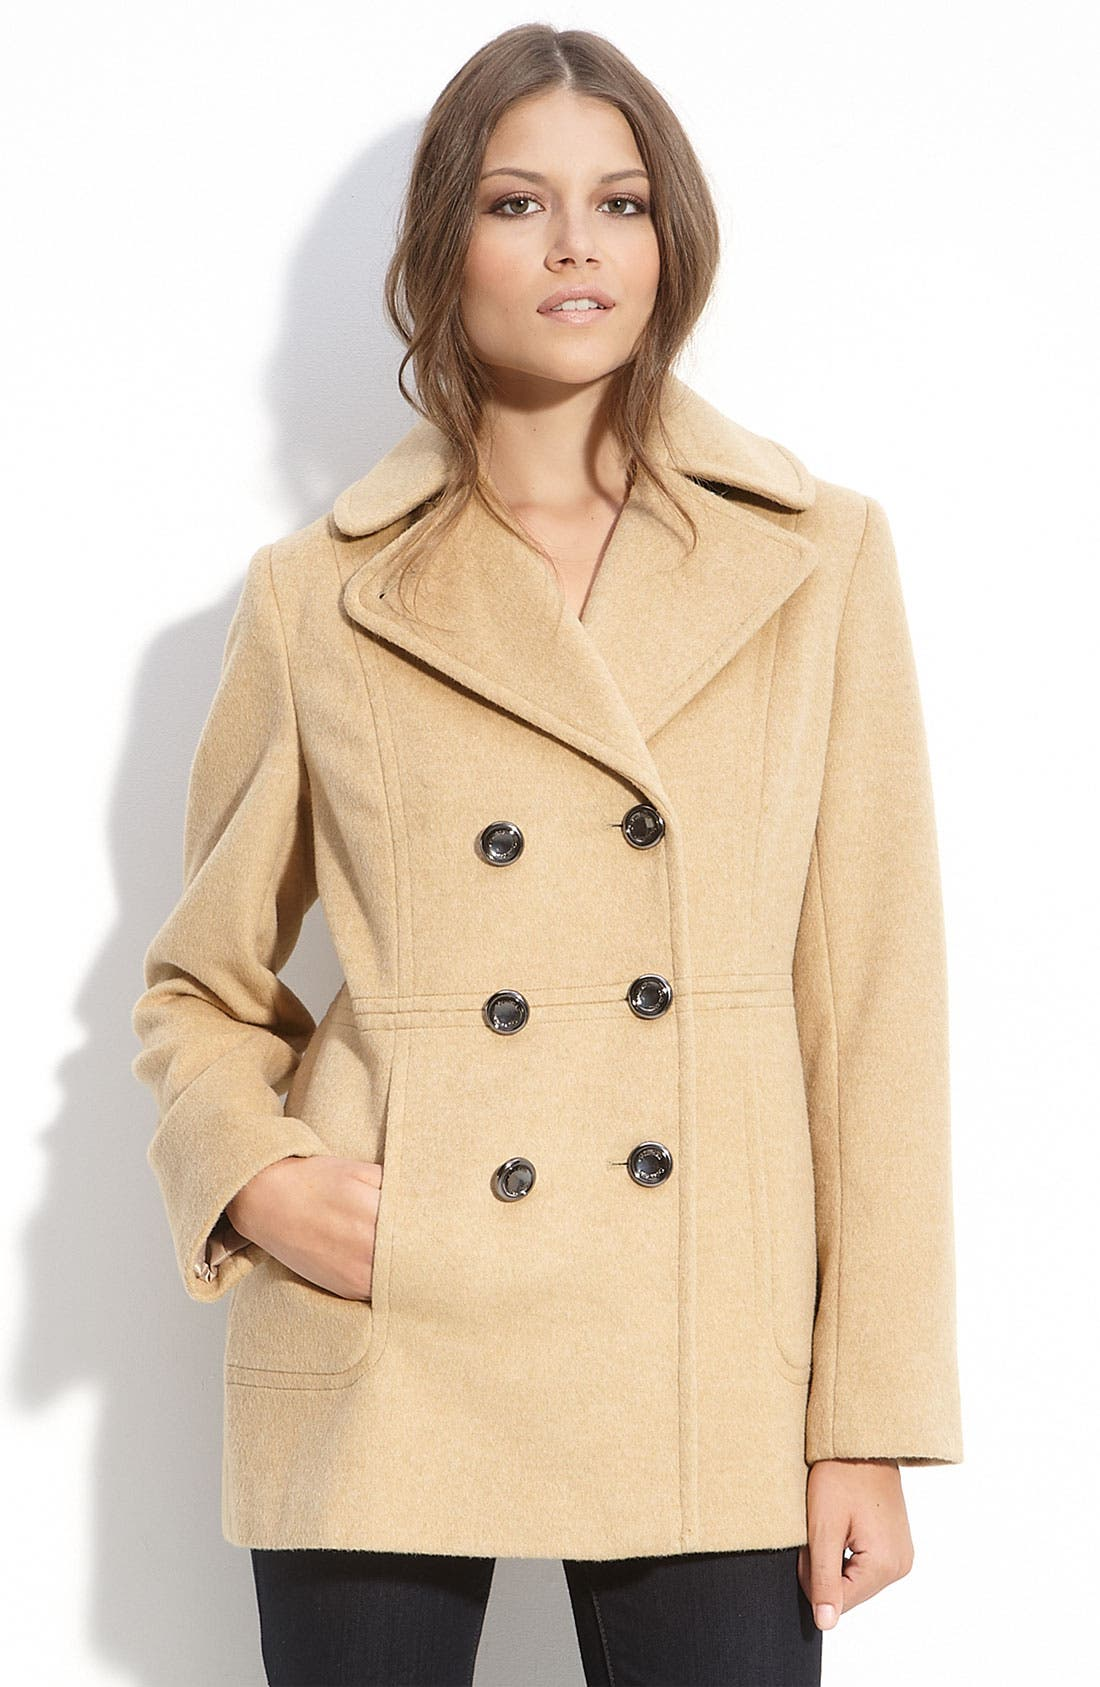 Alternate Image 1 Selected - Calvin Klein Double Breasted Peacoat